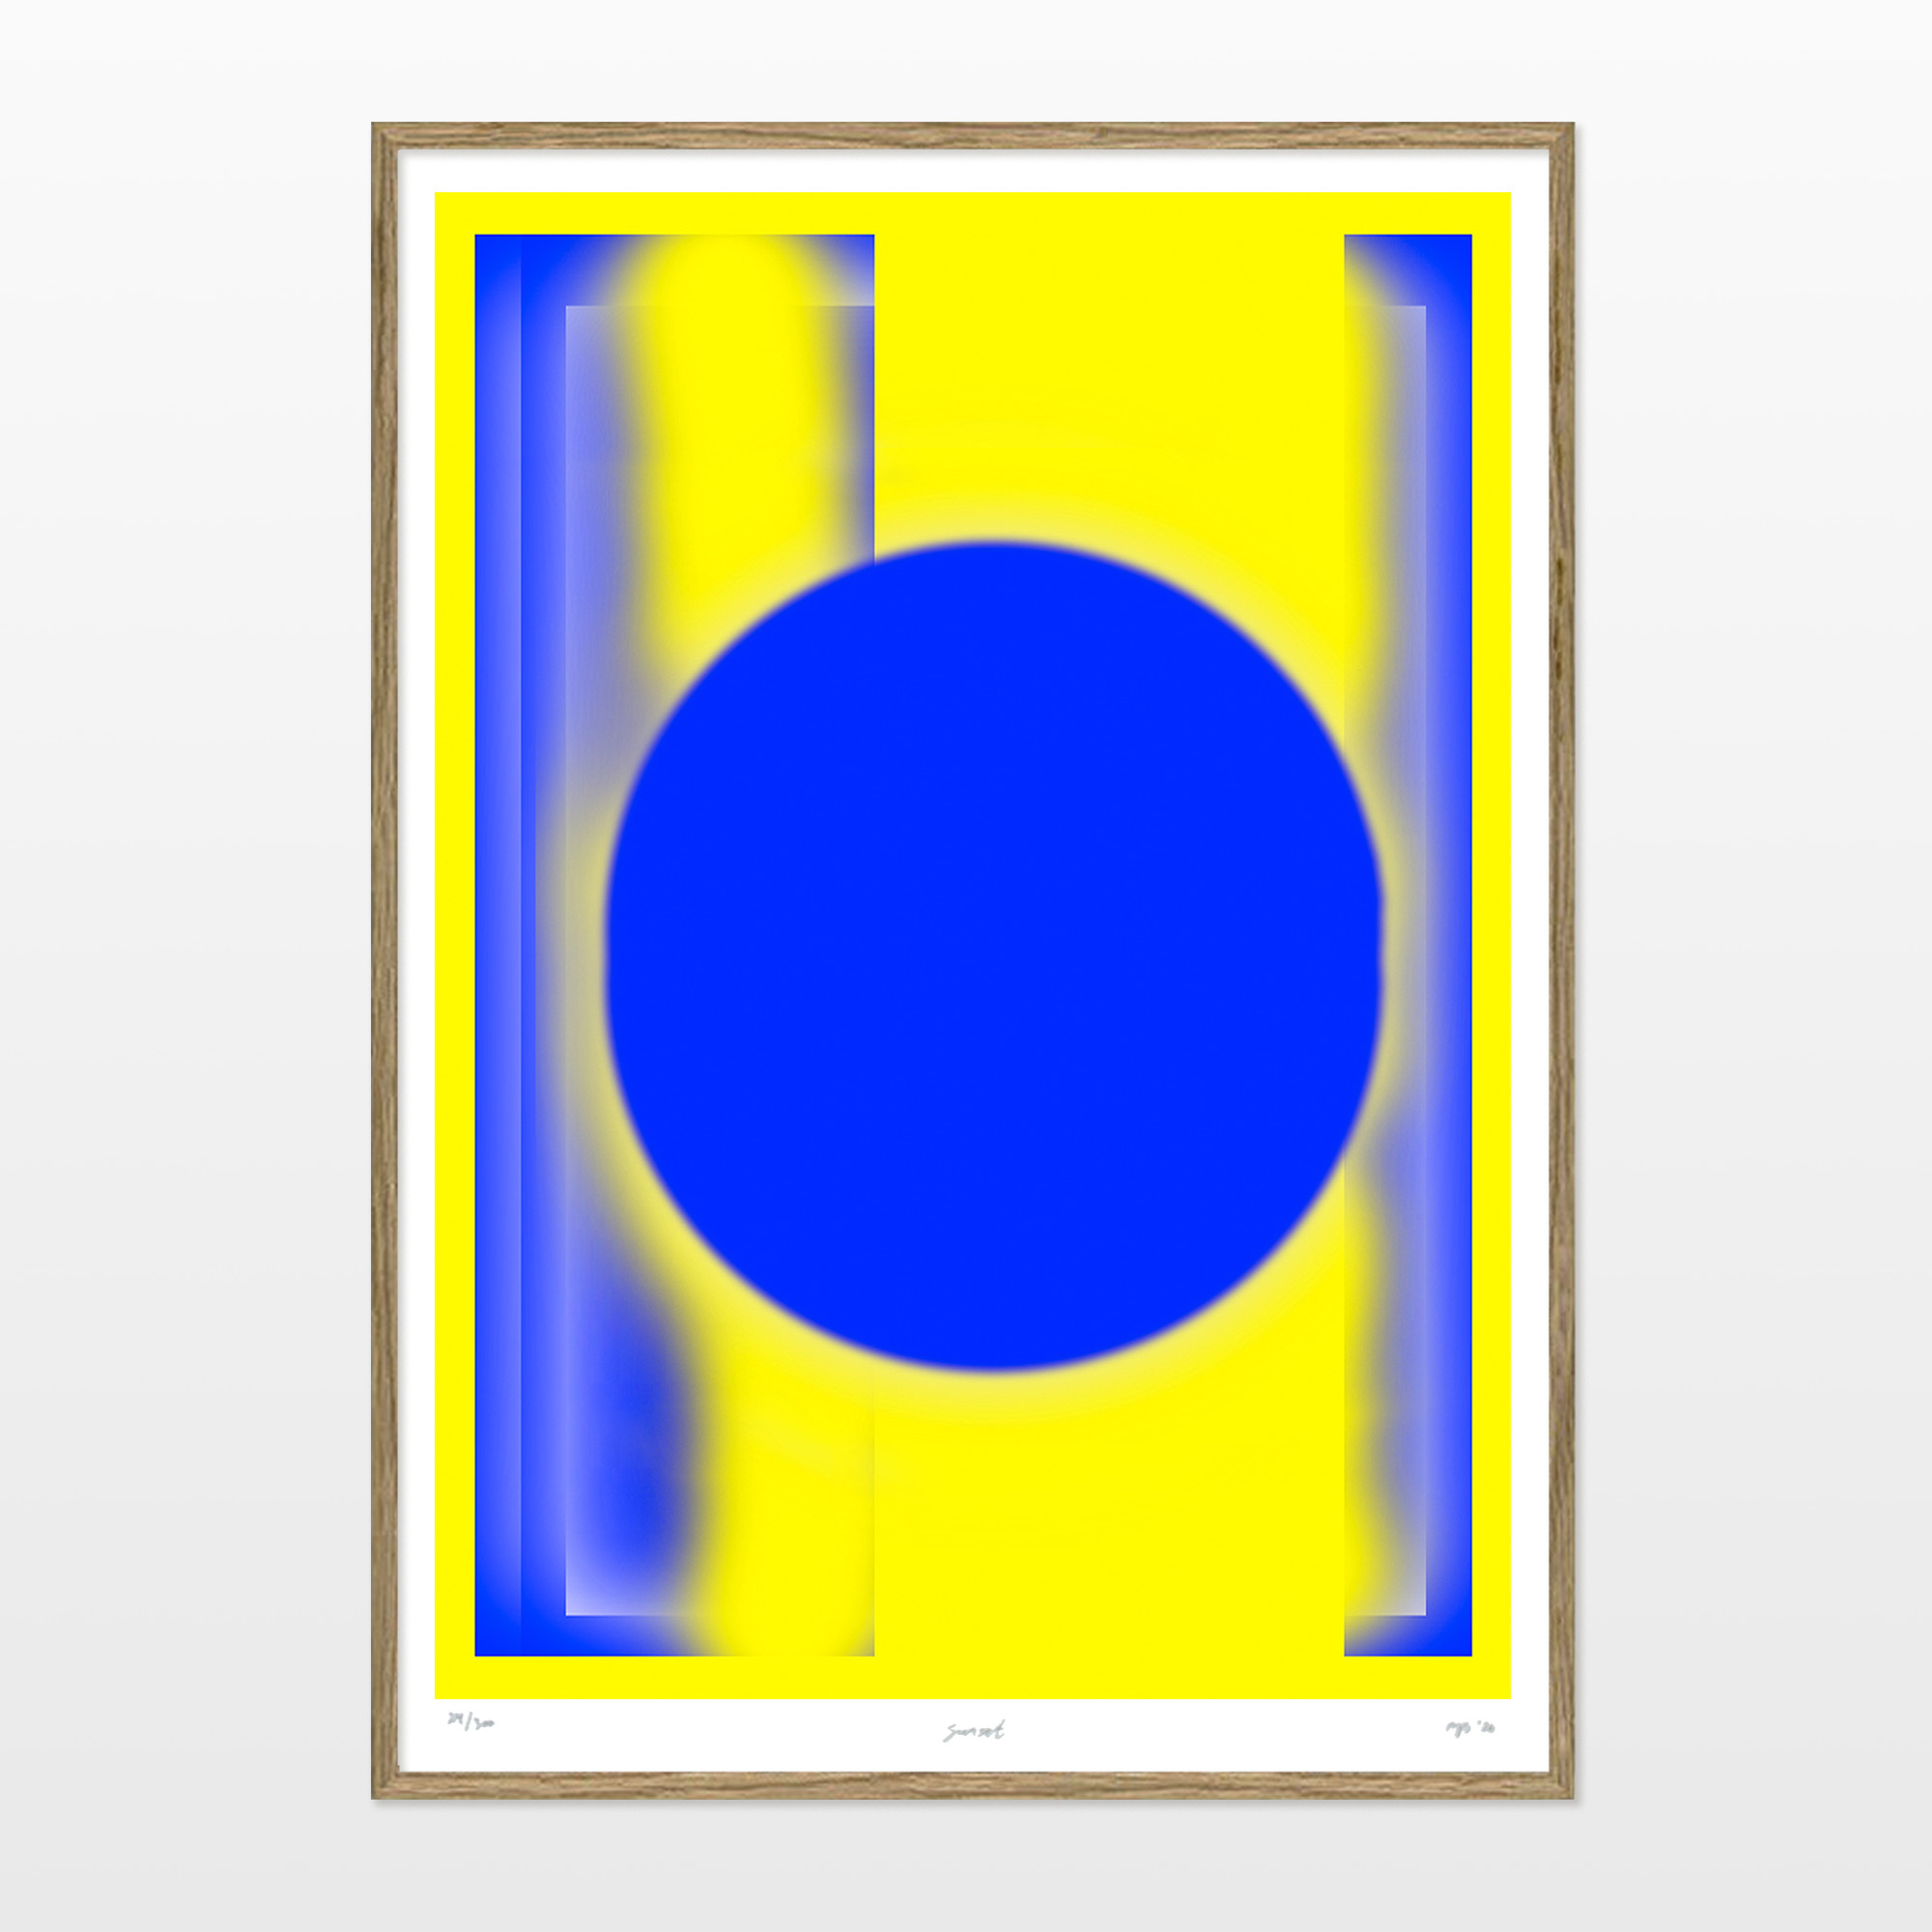 posters-prints, giclee-print, aesthetic, colorful, graphical, minimalistic, pop, architecture, patterns, sky, blue, yellow, ink, paper, beautiful, contemporary-art, copenhagen, danish, design, interior, interior-design, modern, modern-art, nordic, posters, prints, scandinavien, sun, Buy original high quality art. Paintings, drawings, limited edition prints & posters by talented artists.